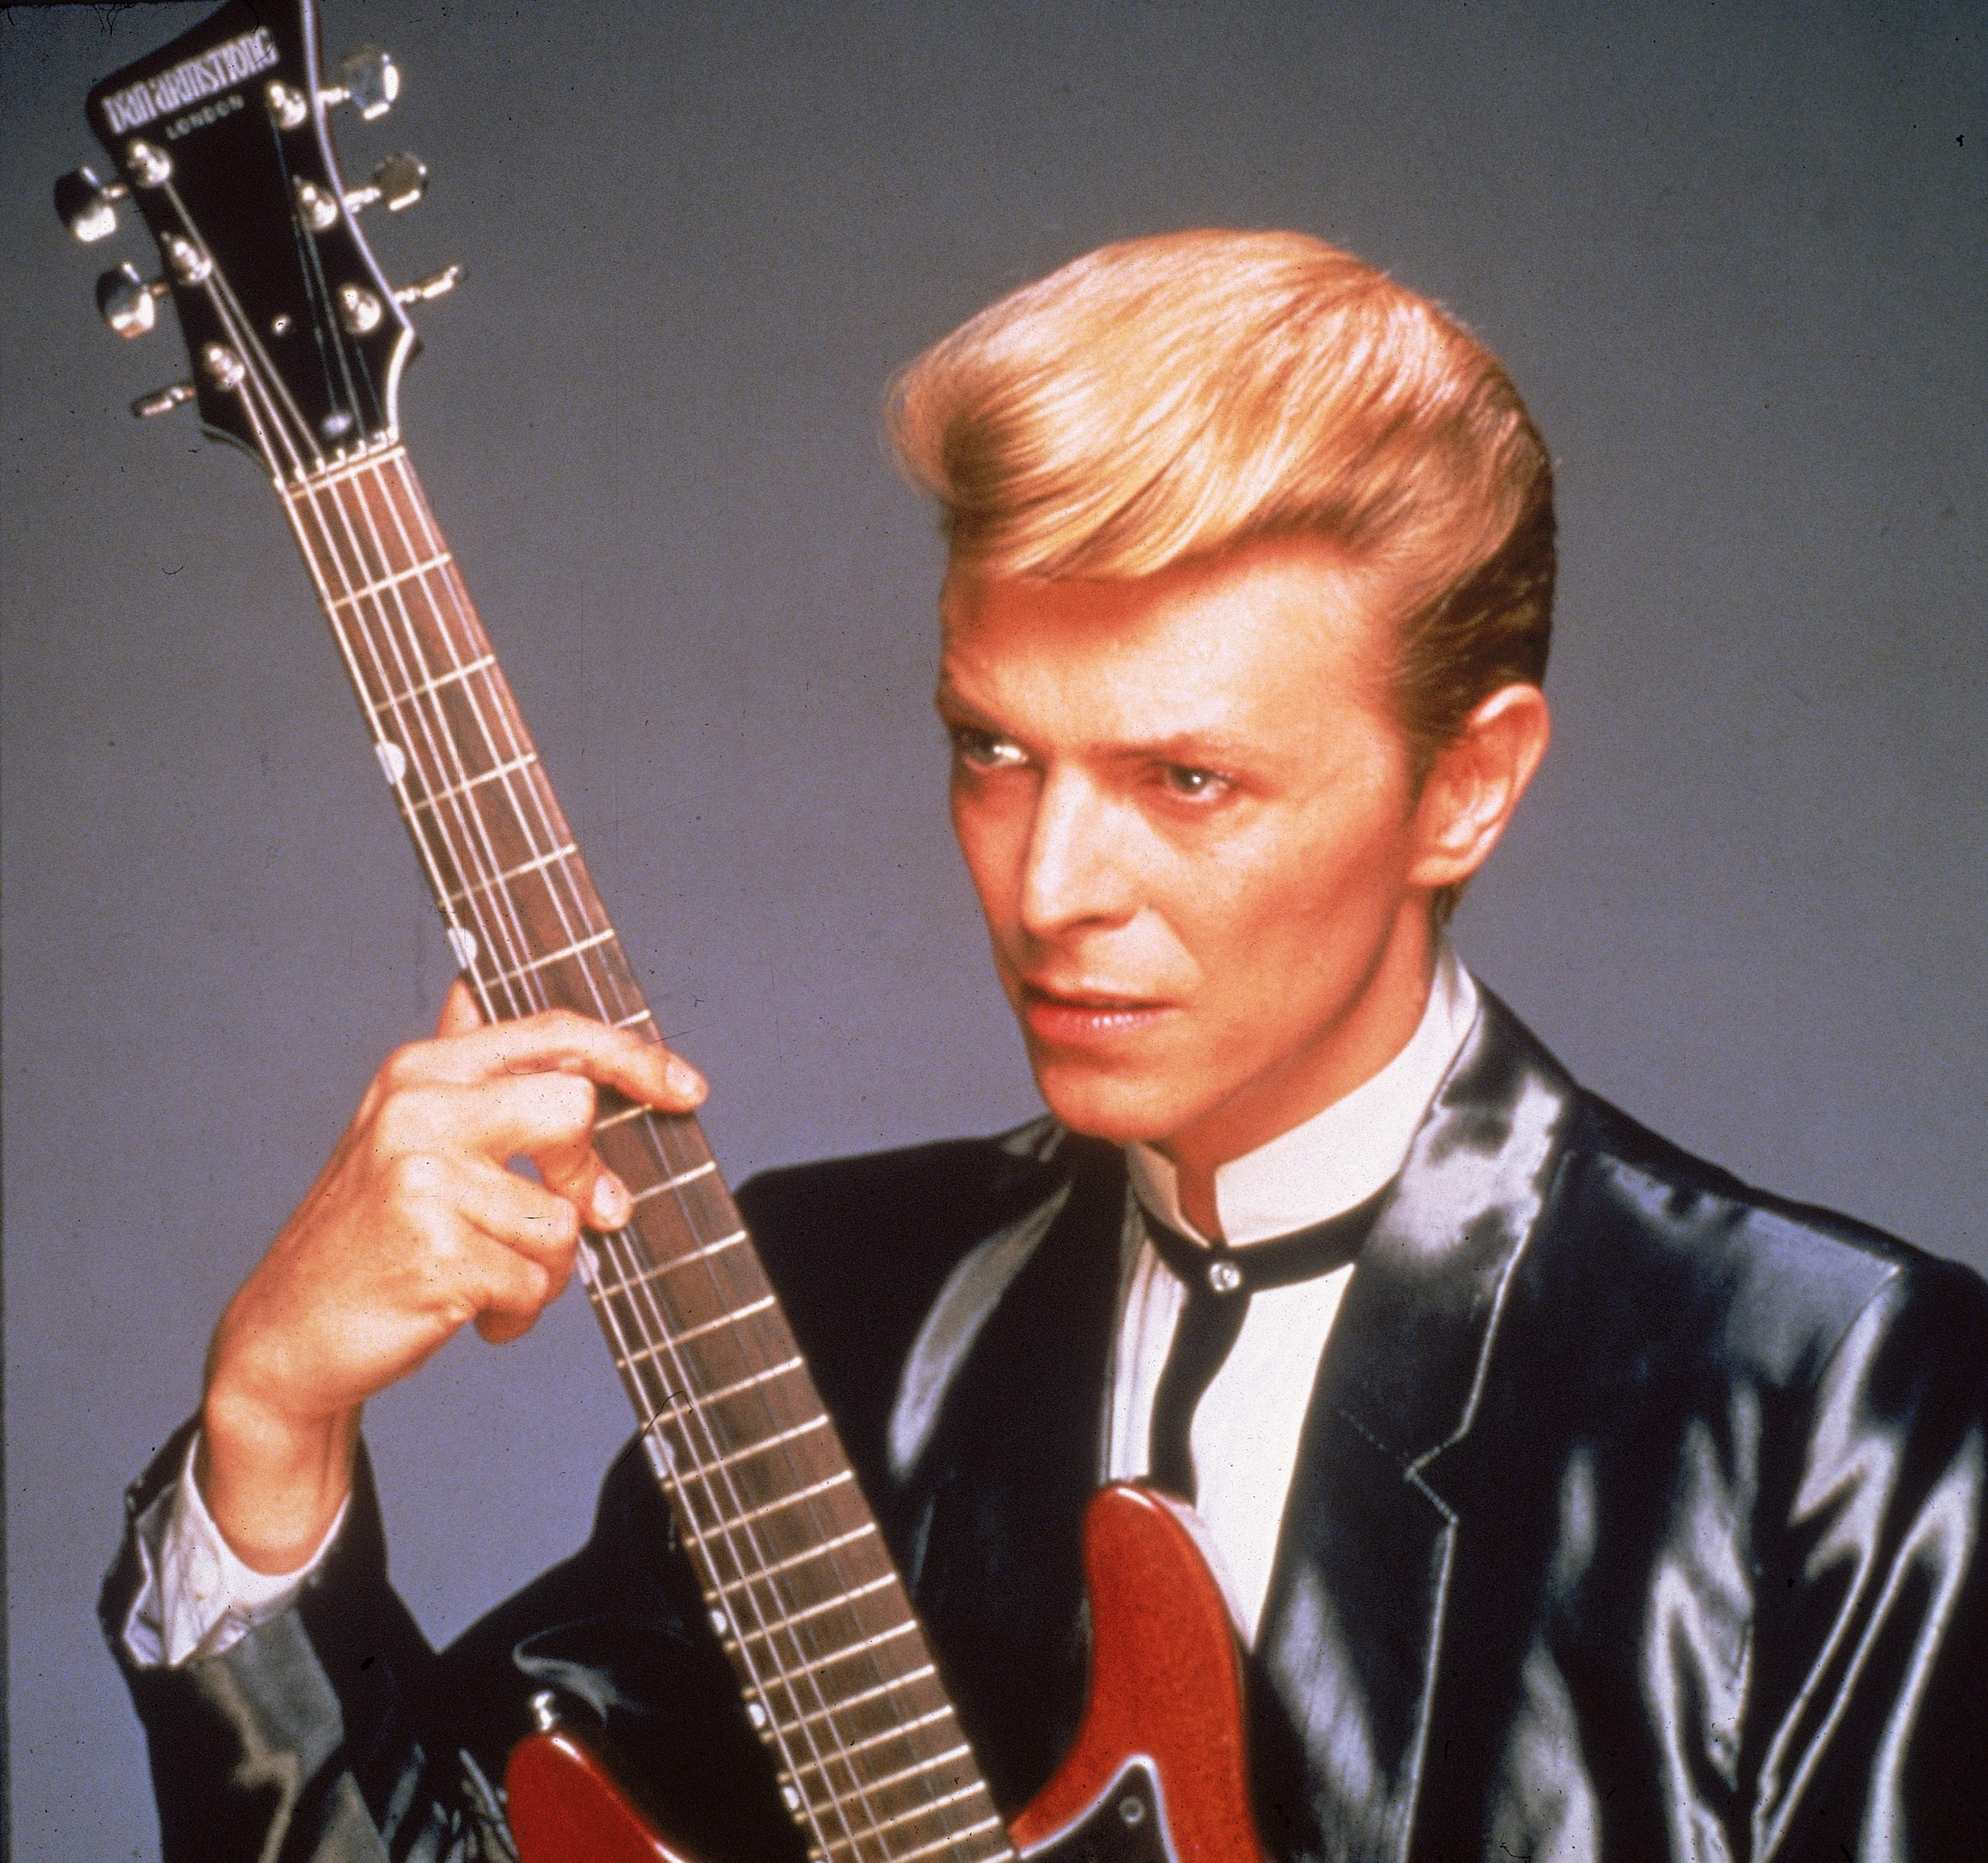 Studio portrait of British rock singer David Bowie wearing a black satin suit and holding a red guitar, 1980s.